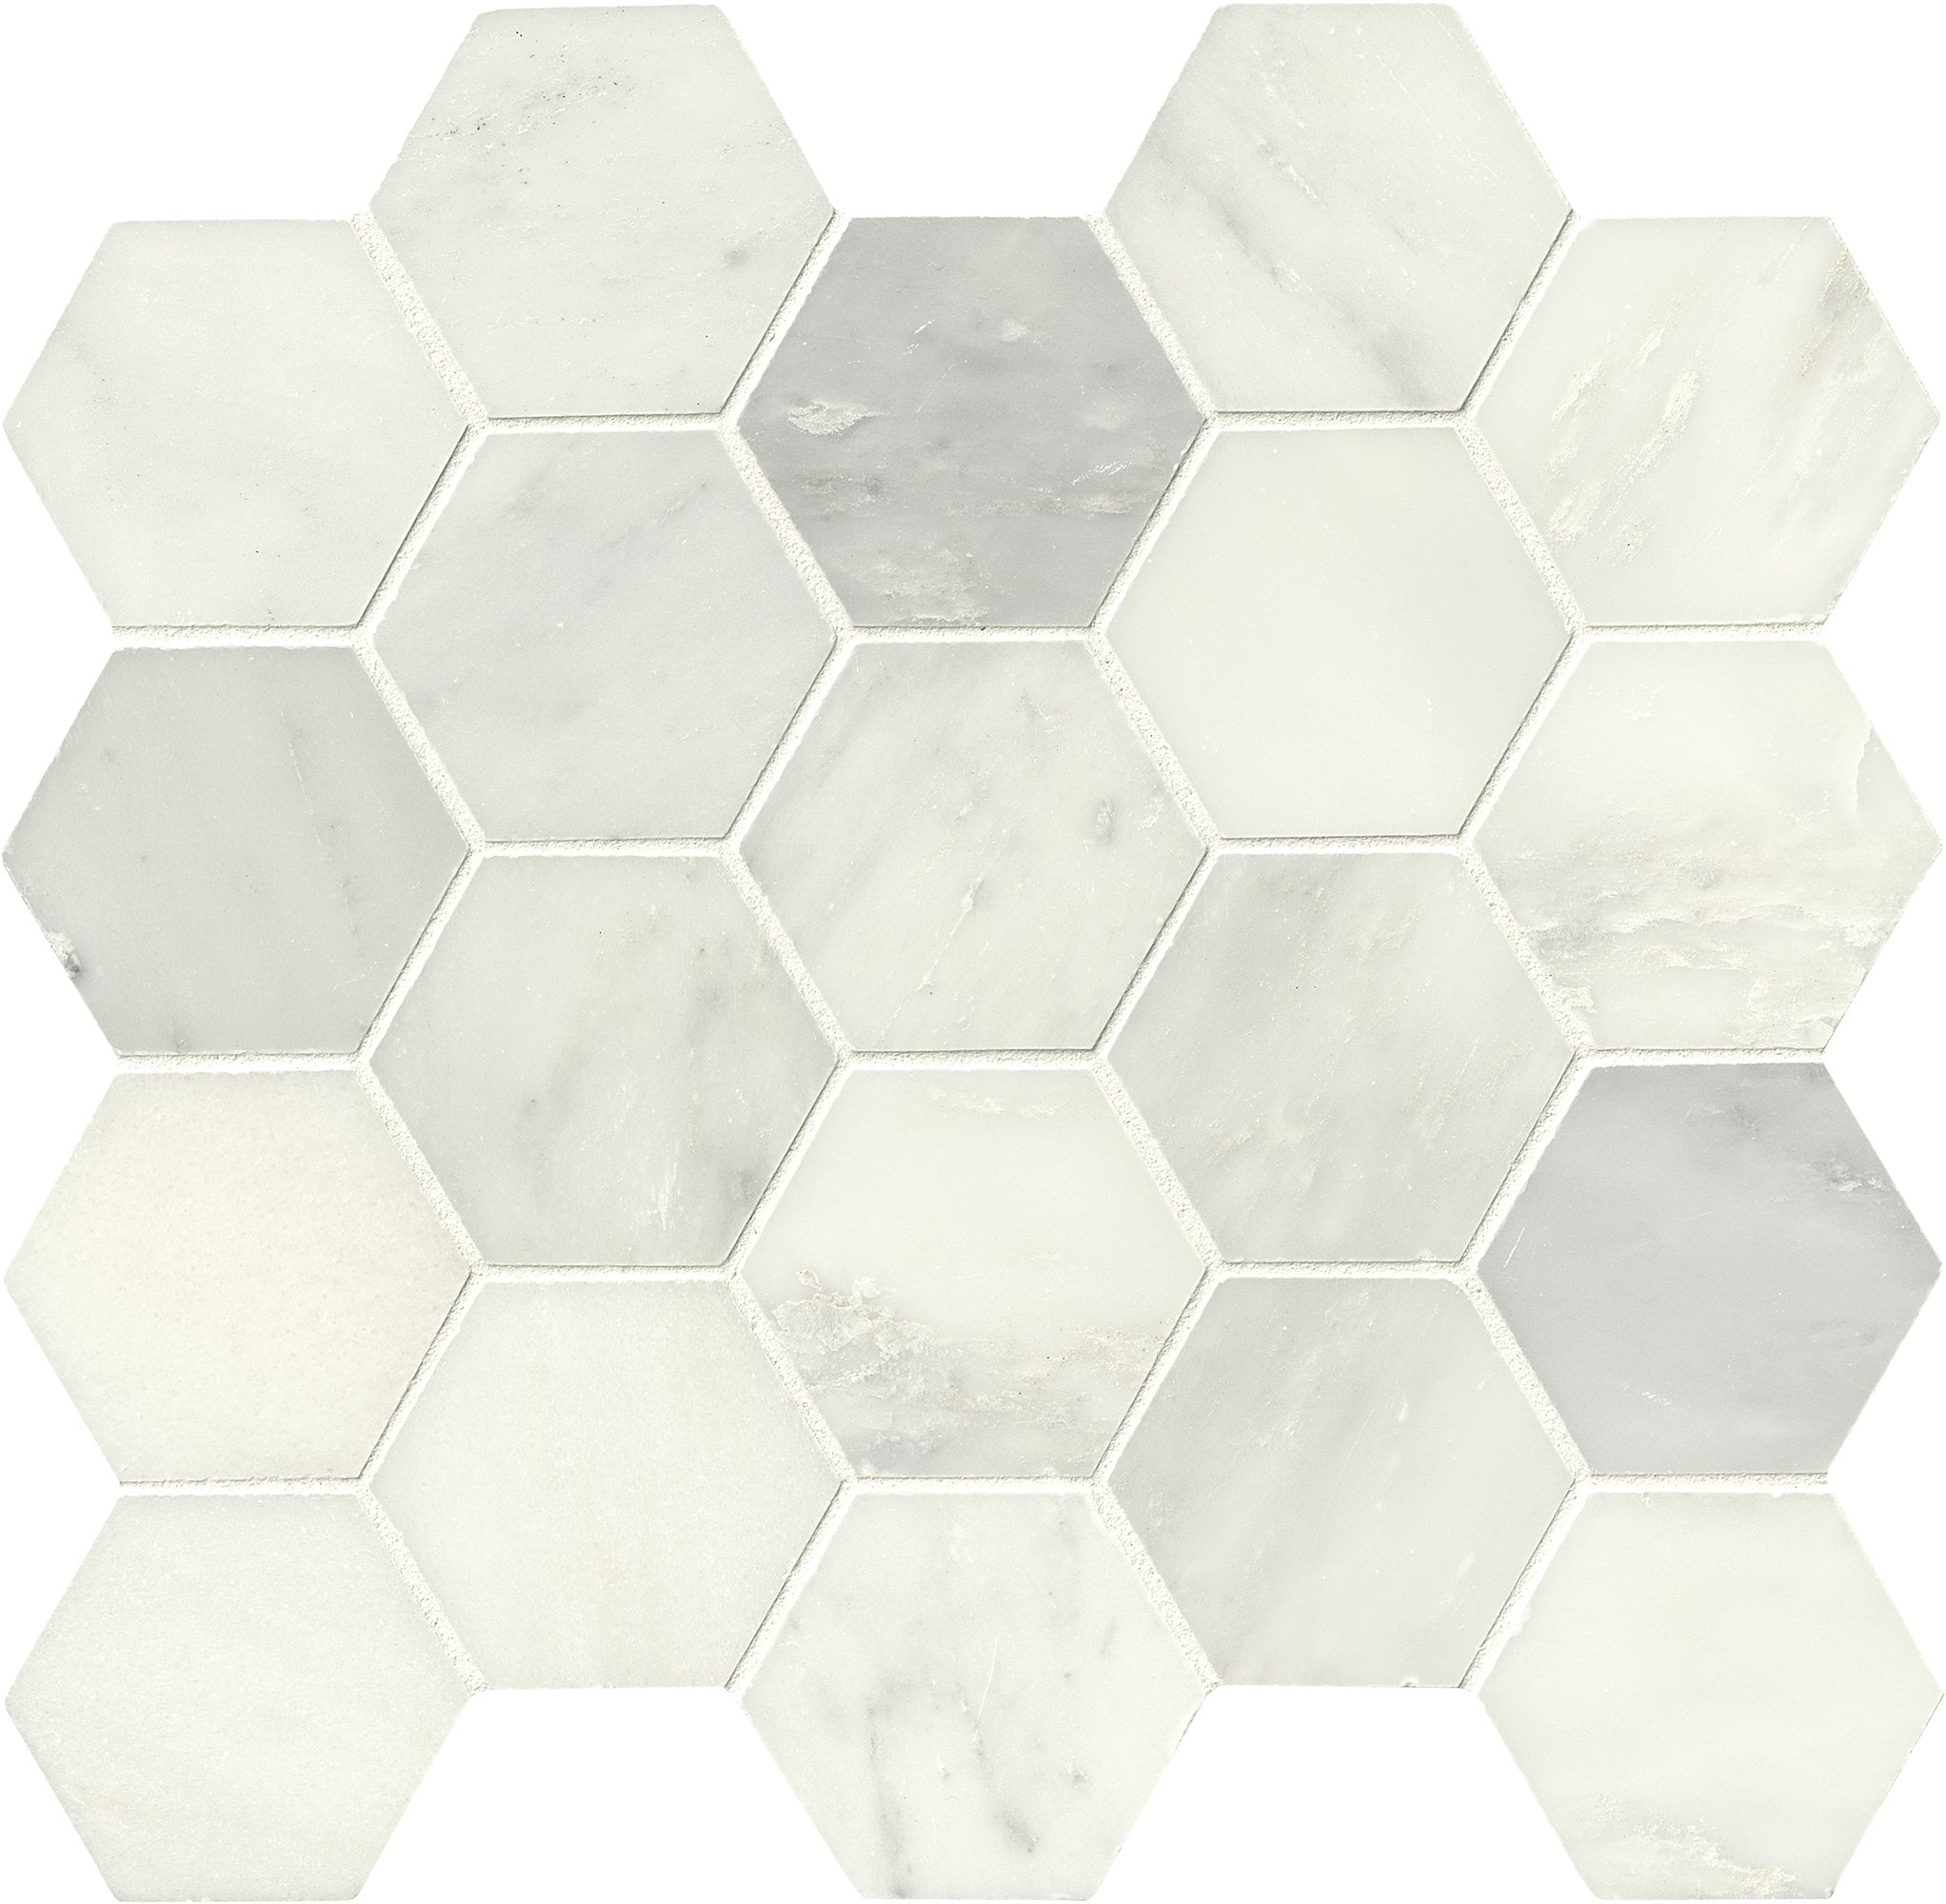 M S International Greecian White Interlocking 12 in. x 12 in. x 10 mm Polished Marble Mesh-Mounted Mosaic Tile (10 sq. ft. / case)